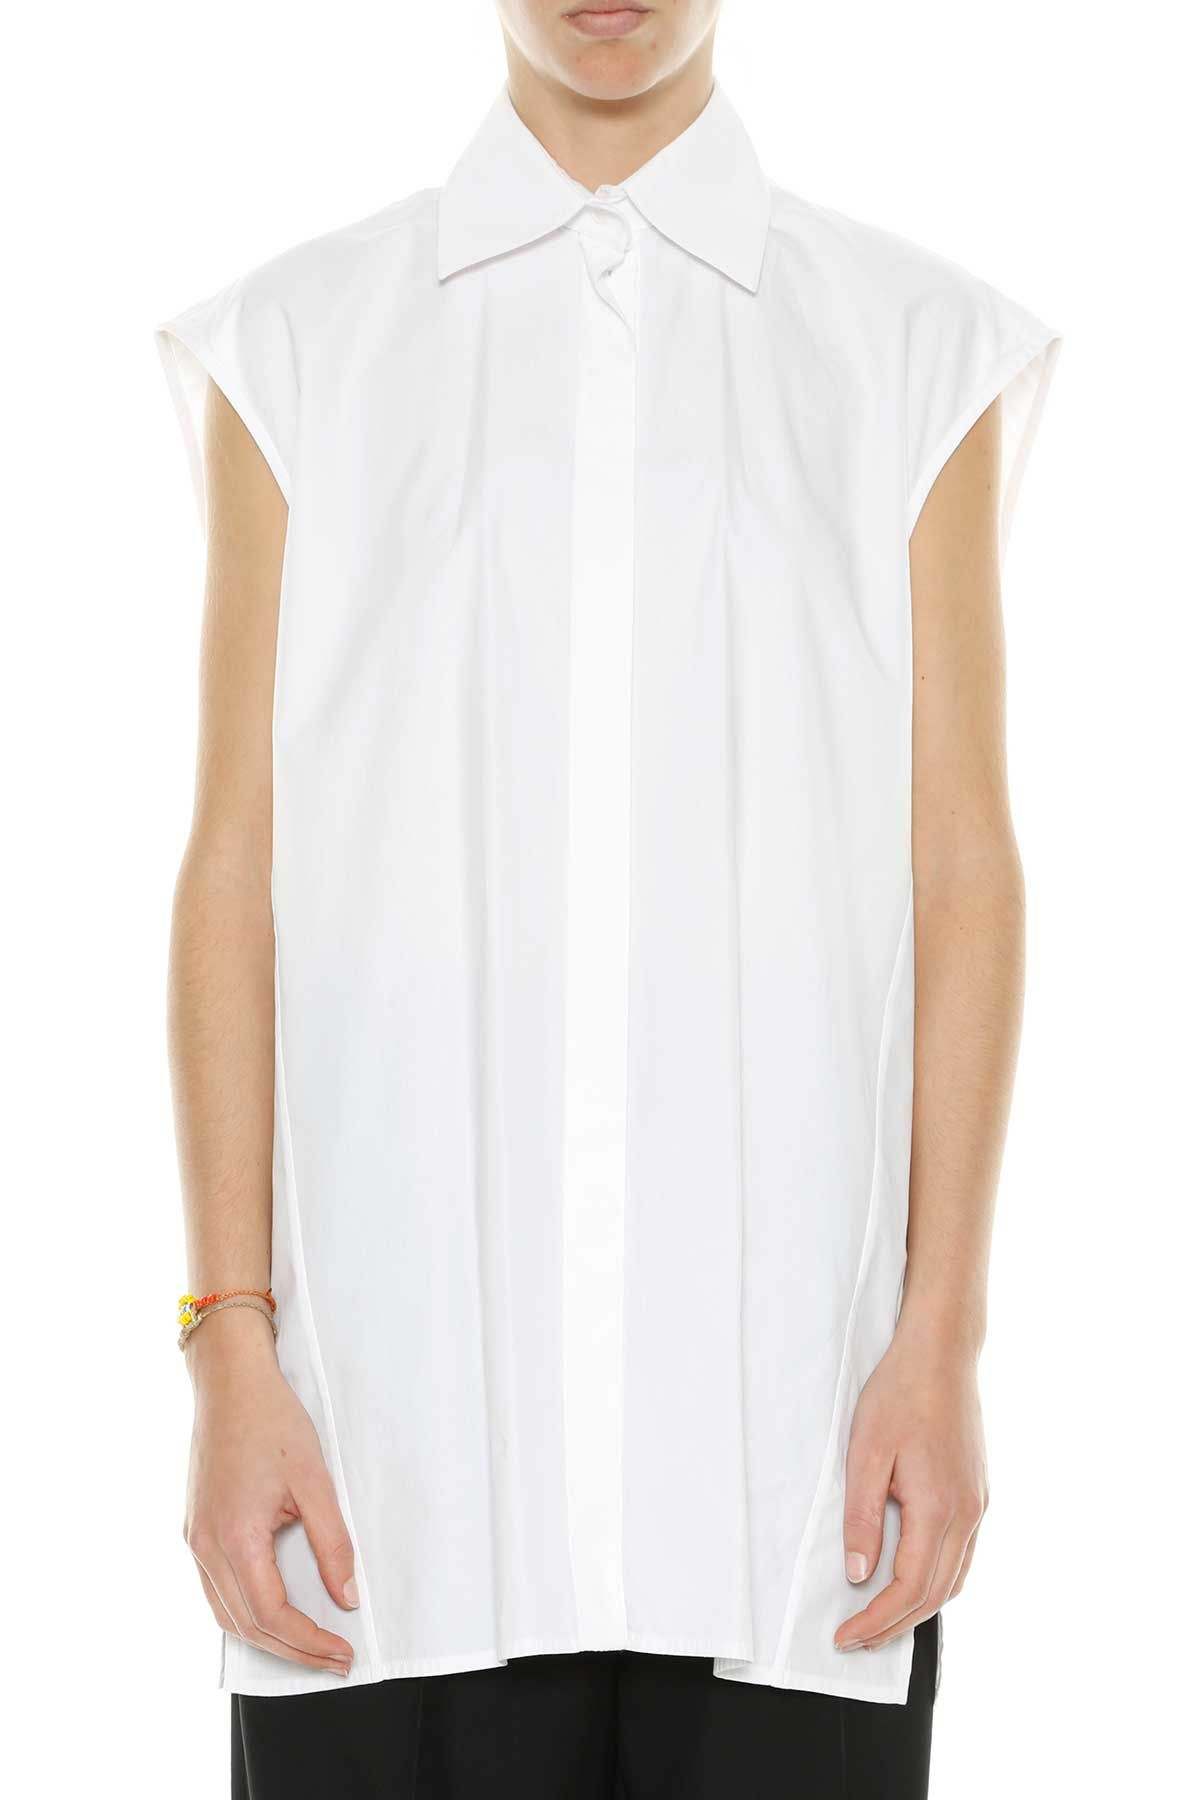 Celine Fluid Cotton Shirt